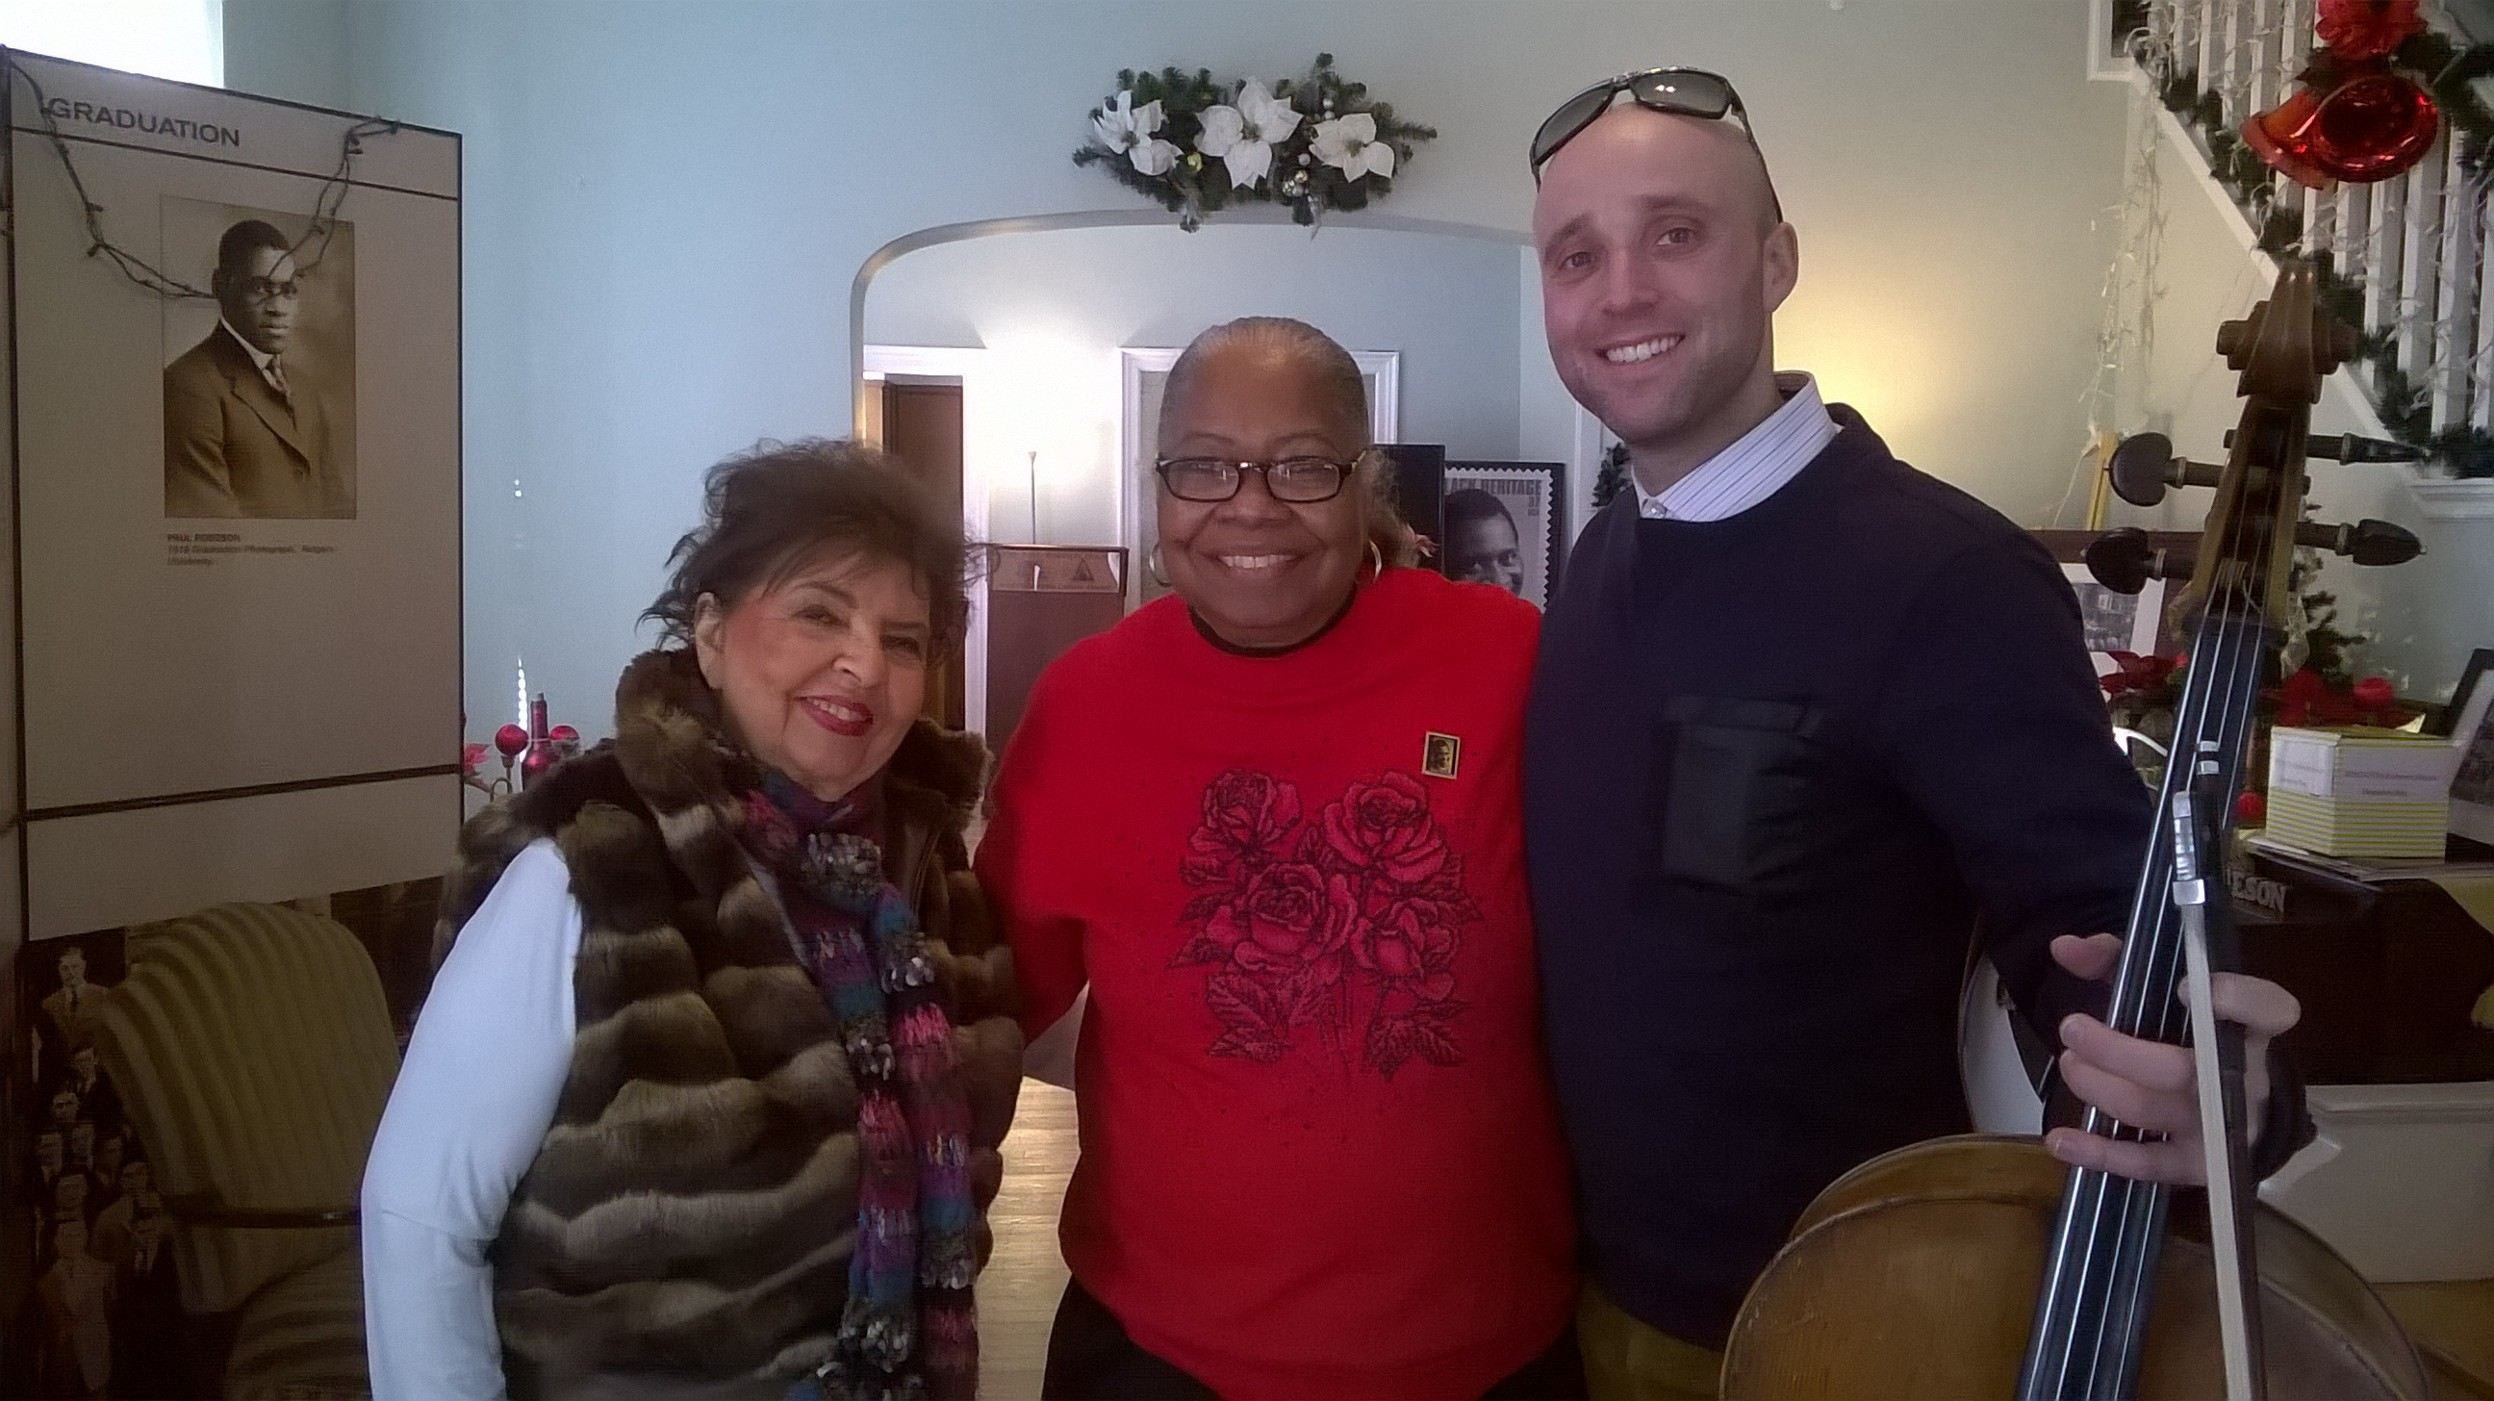 Marie Taylor, renown pianist, Veronica L. Michael, Steve Krameer, cellist, at the Paul Robeson House.